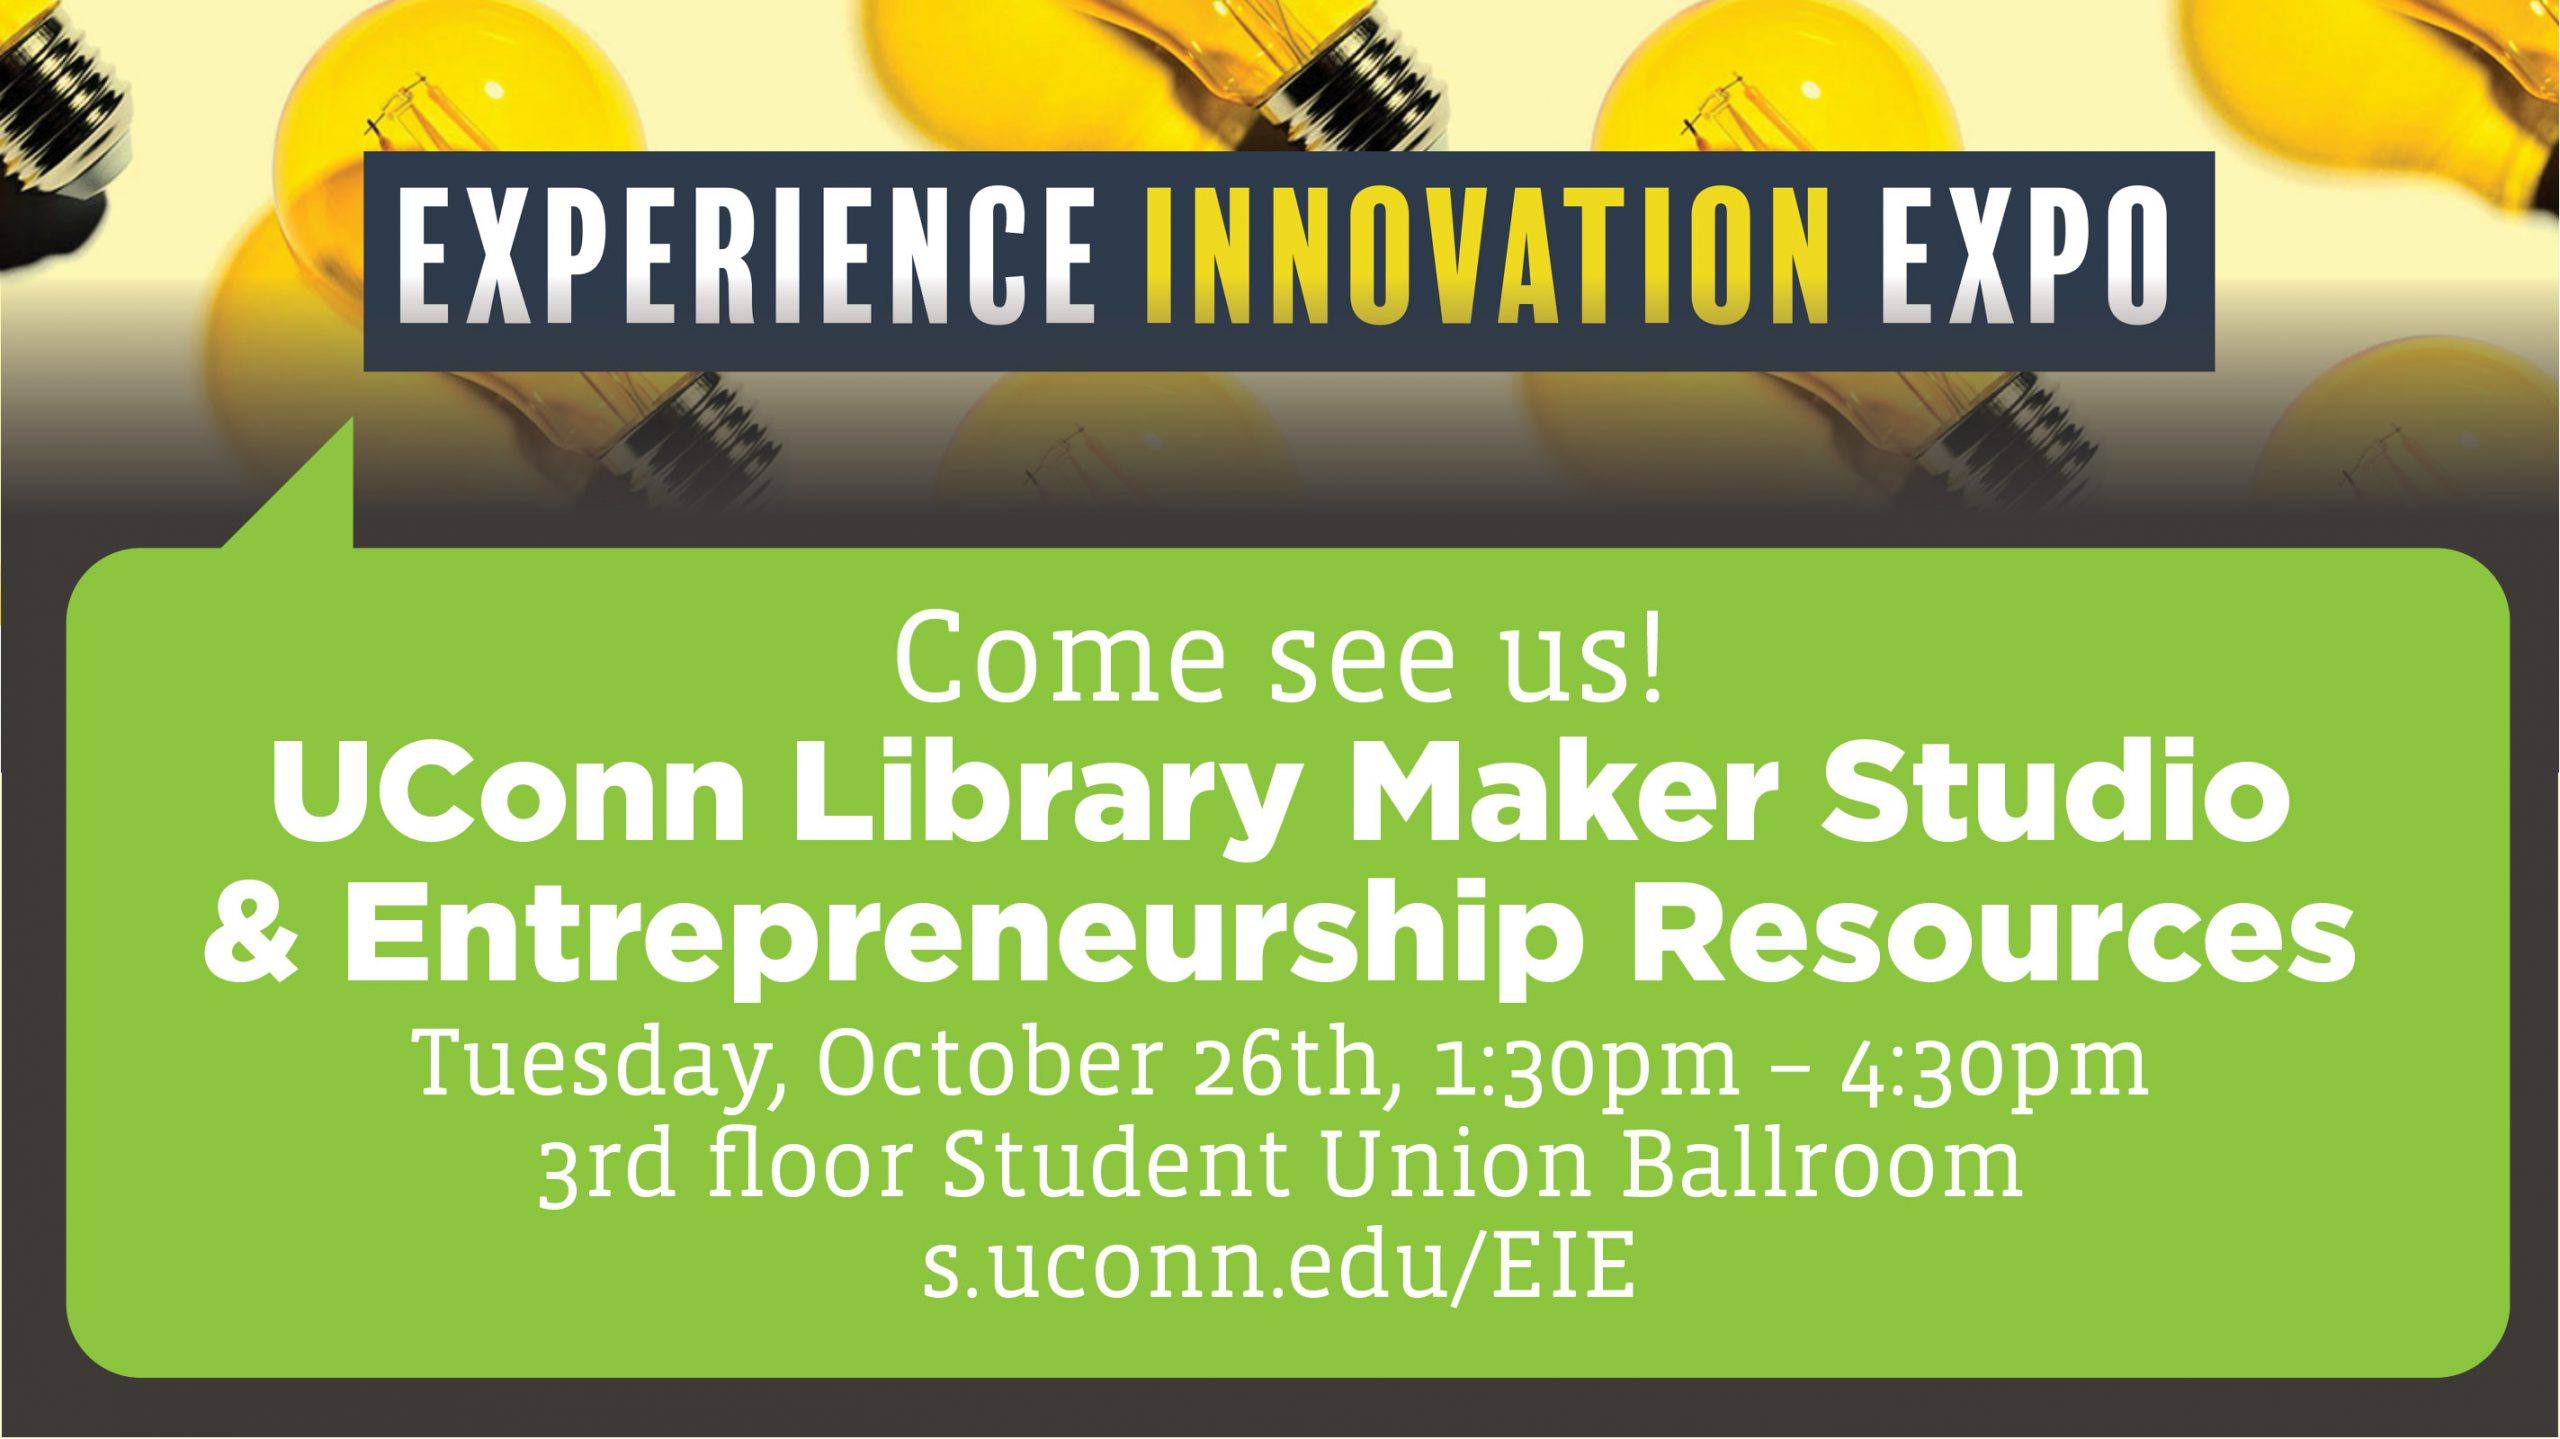 Experience Innovation Expo: Come see us! UConn Library Maker Studio & Entrepreneurship Resources, Tuesday, October 26th, 1:30pm – 4:30pm 3rd floor Student Union Ballroom s.uconn.edu/EIE